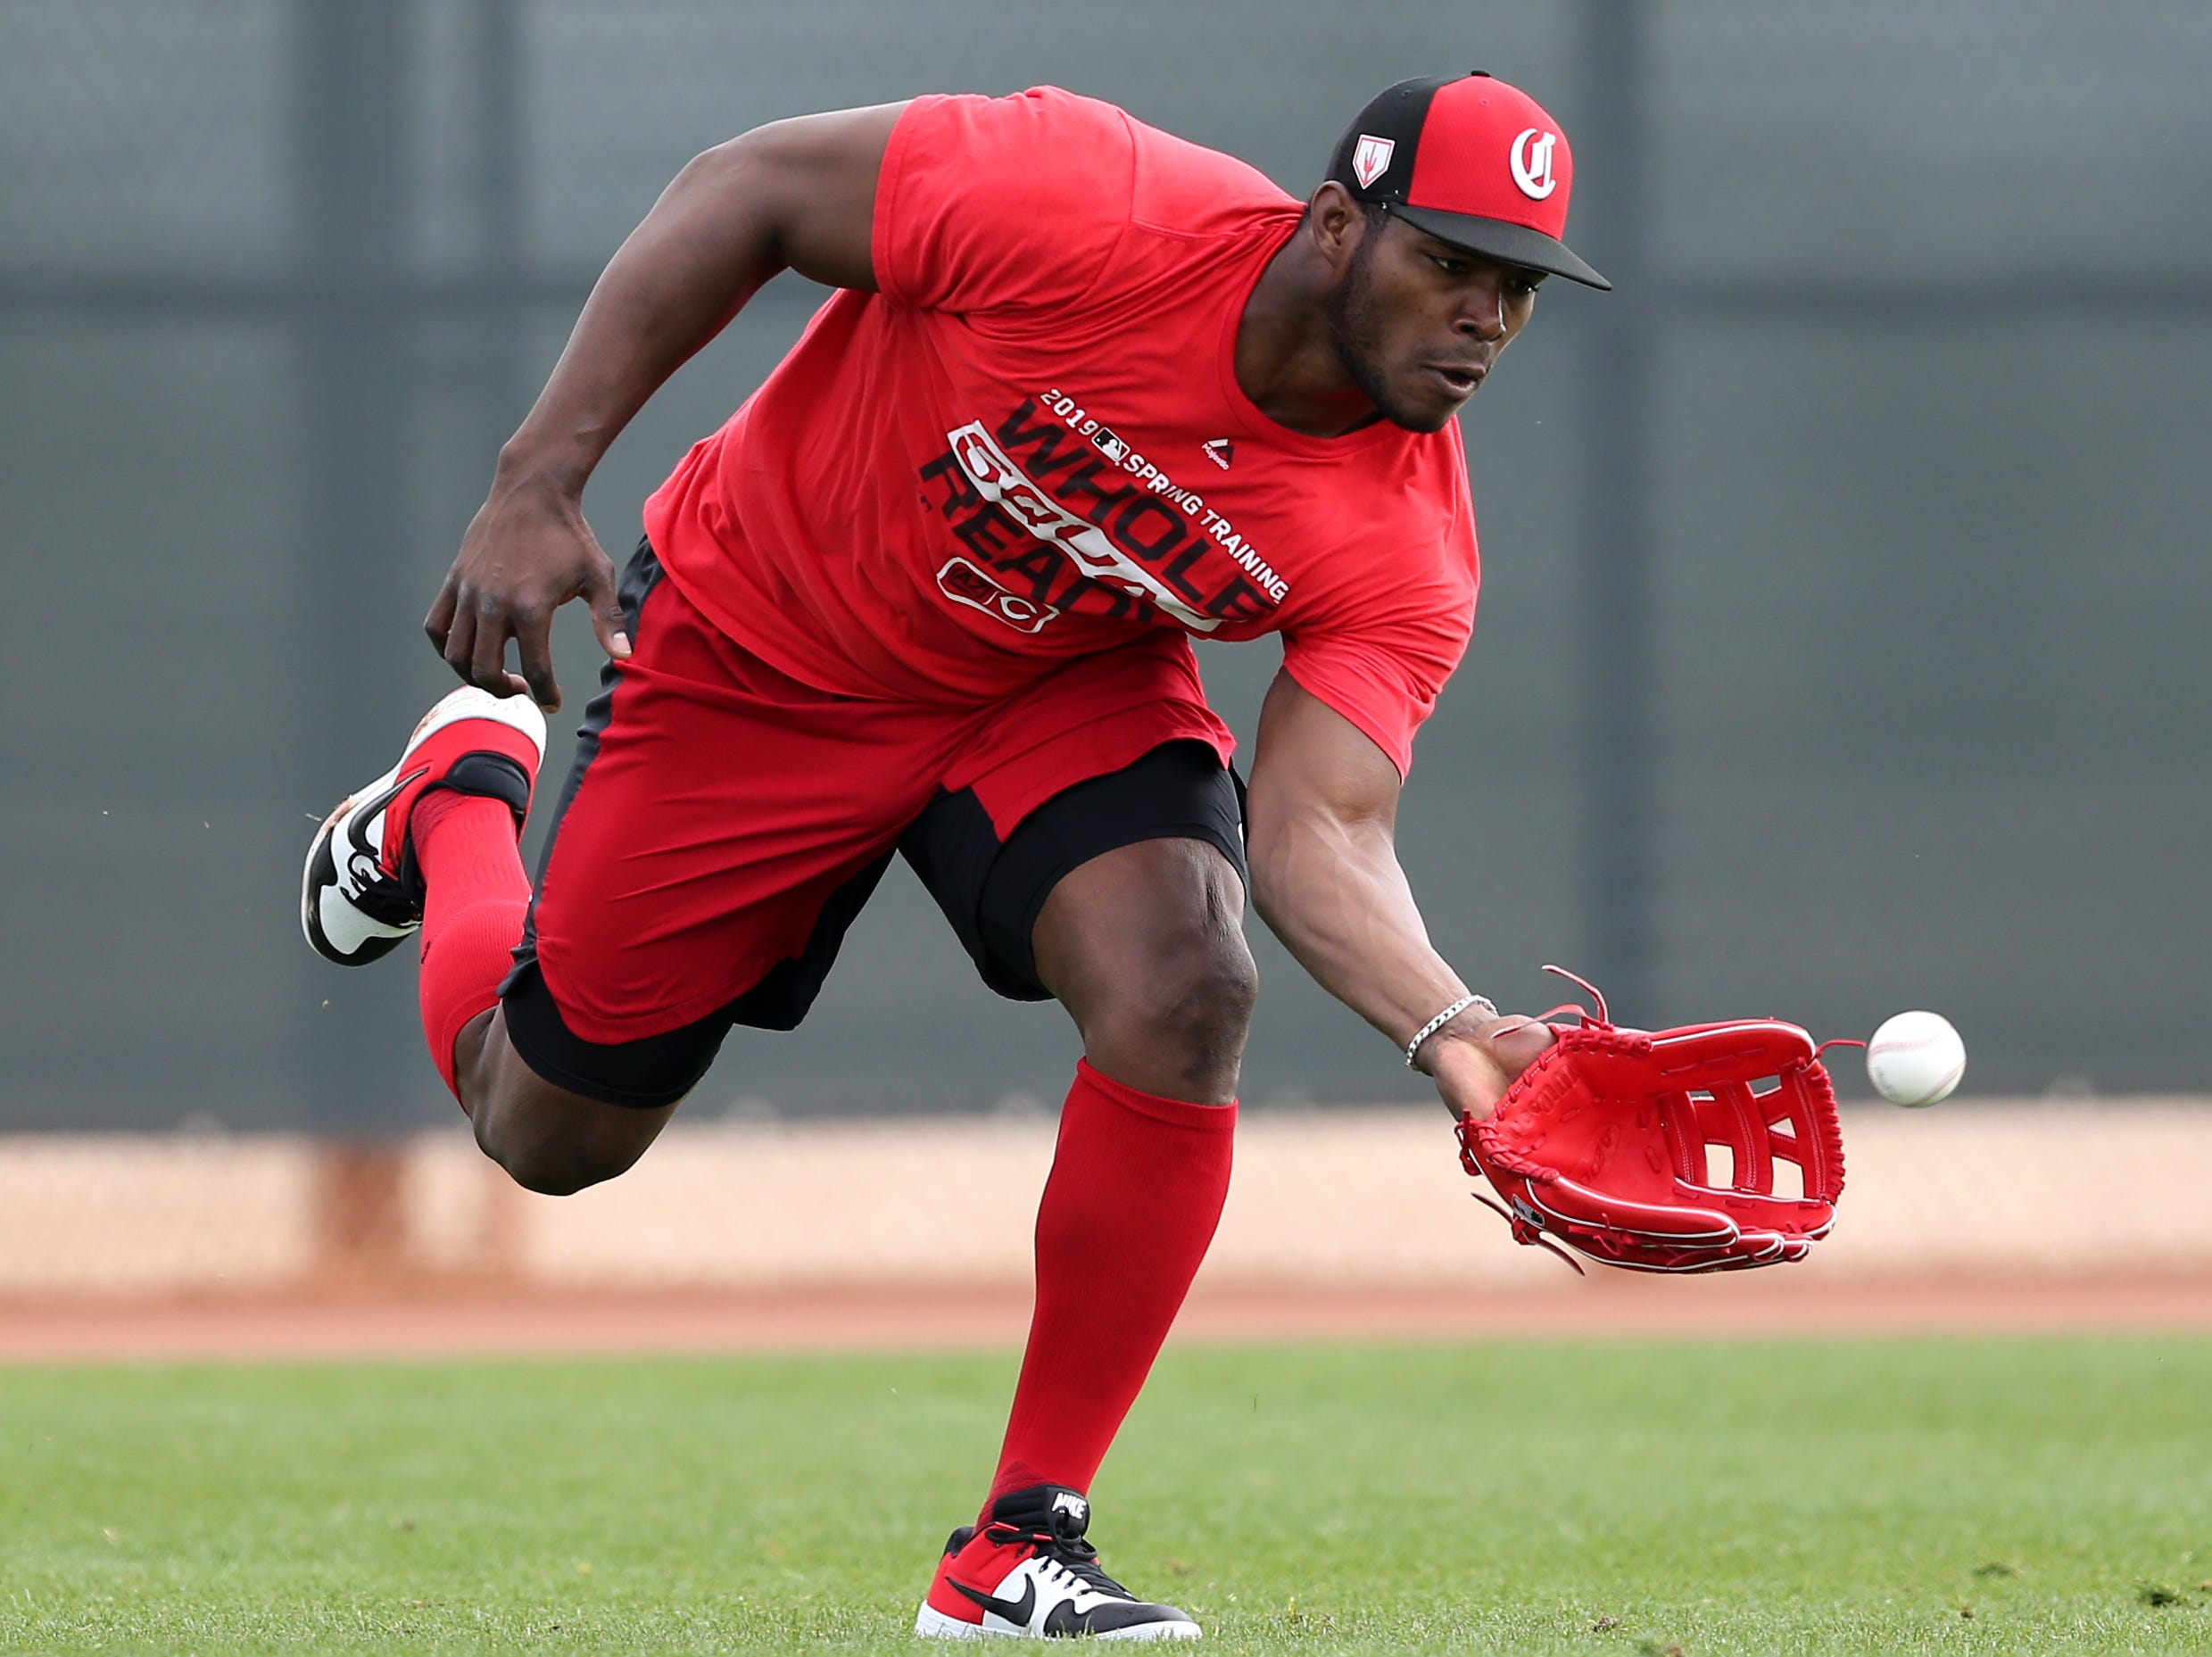 Cincinnati Reds right fielder Yasiel Puig (66) fields a fly ball, Friday, Feb. 15, 2019, at the Cincinnati Reds spring training facility in Goodyear, Arizona.